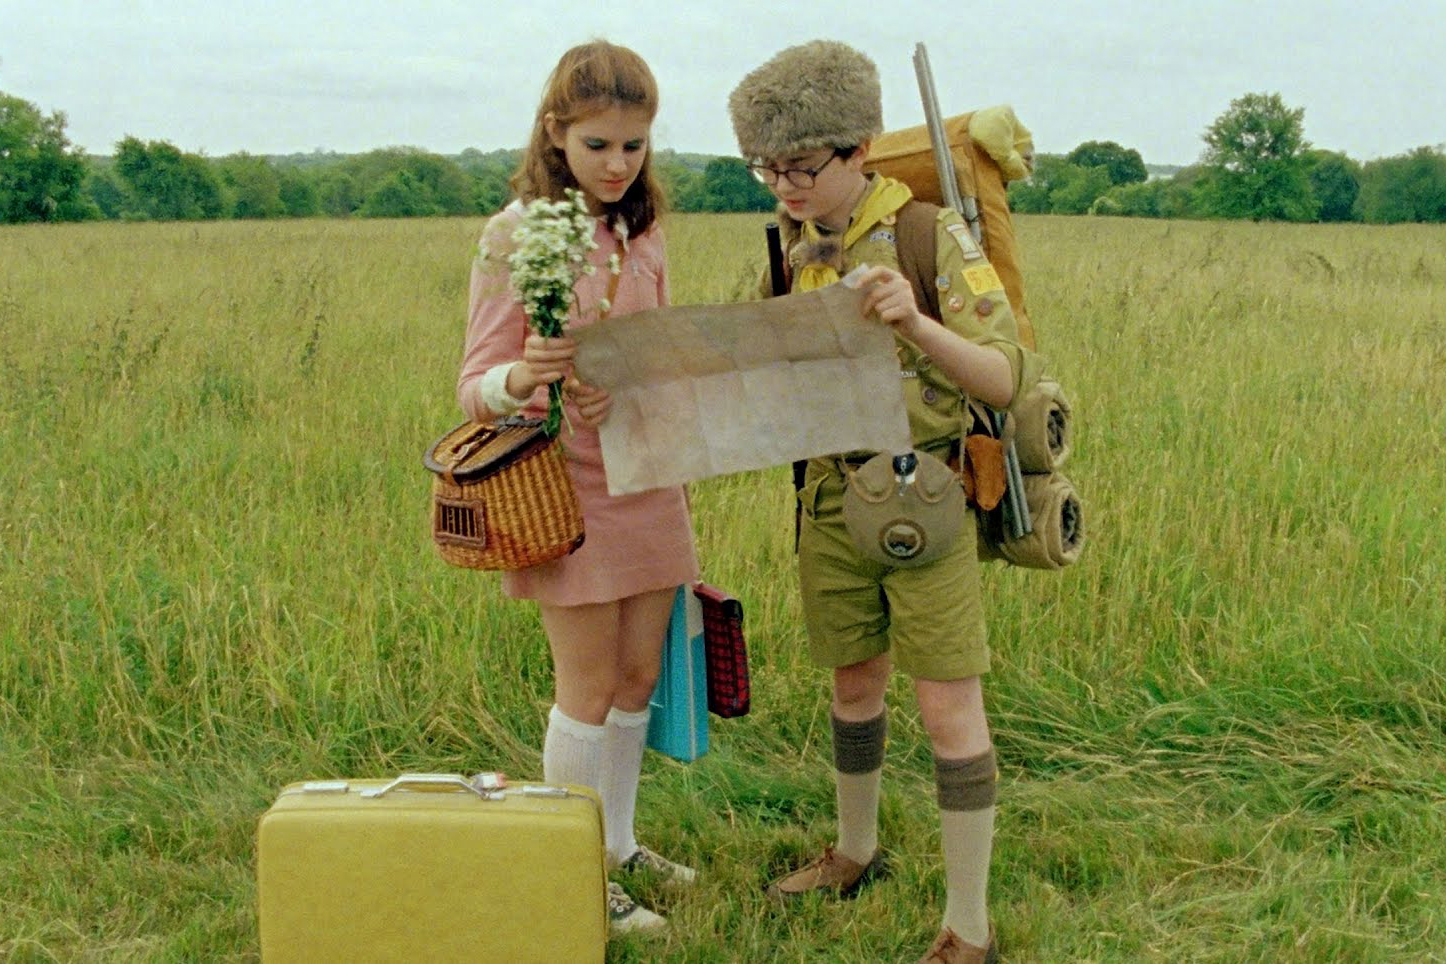 Retromantisch Wes Anderson Moonrise Kingdom Suzy Bishop pink dress collar suitcase scout